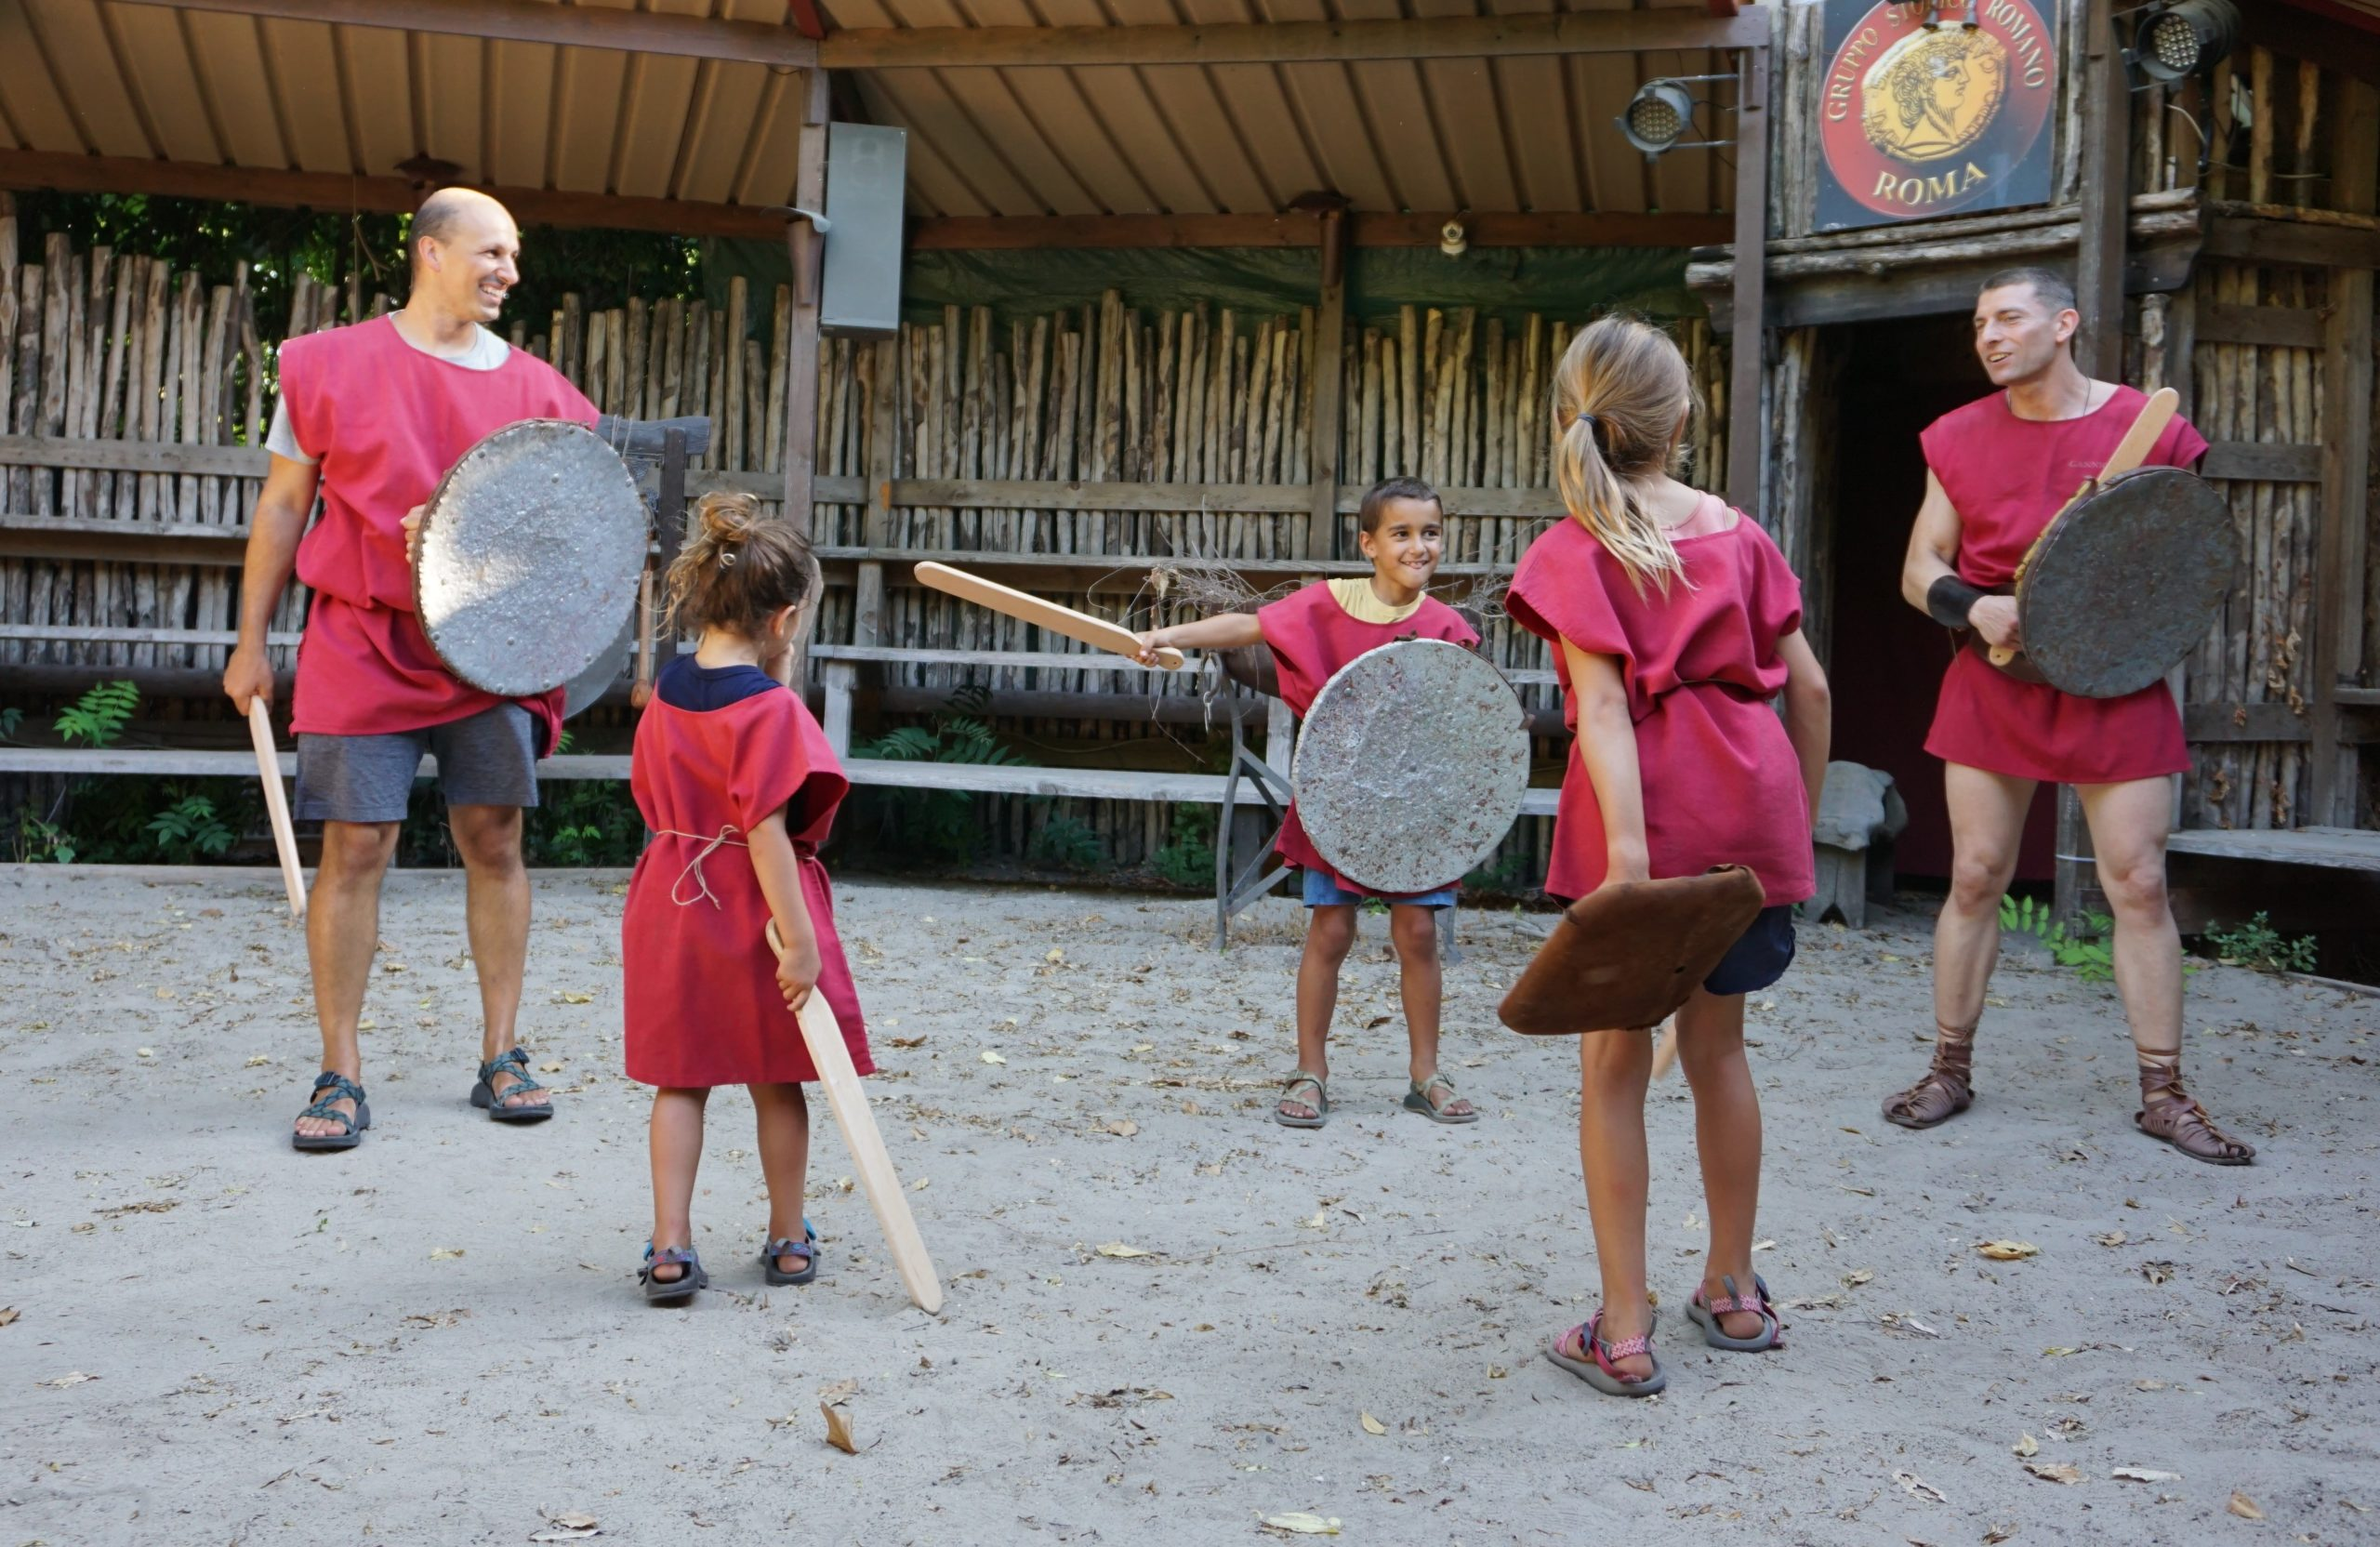 Gladiator School In Rome: 6 Good Reasons To Book A Training Class For You(r Family)